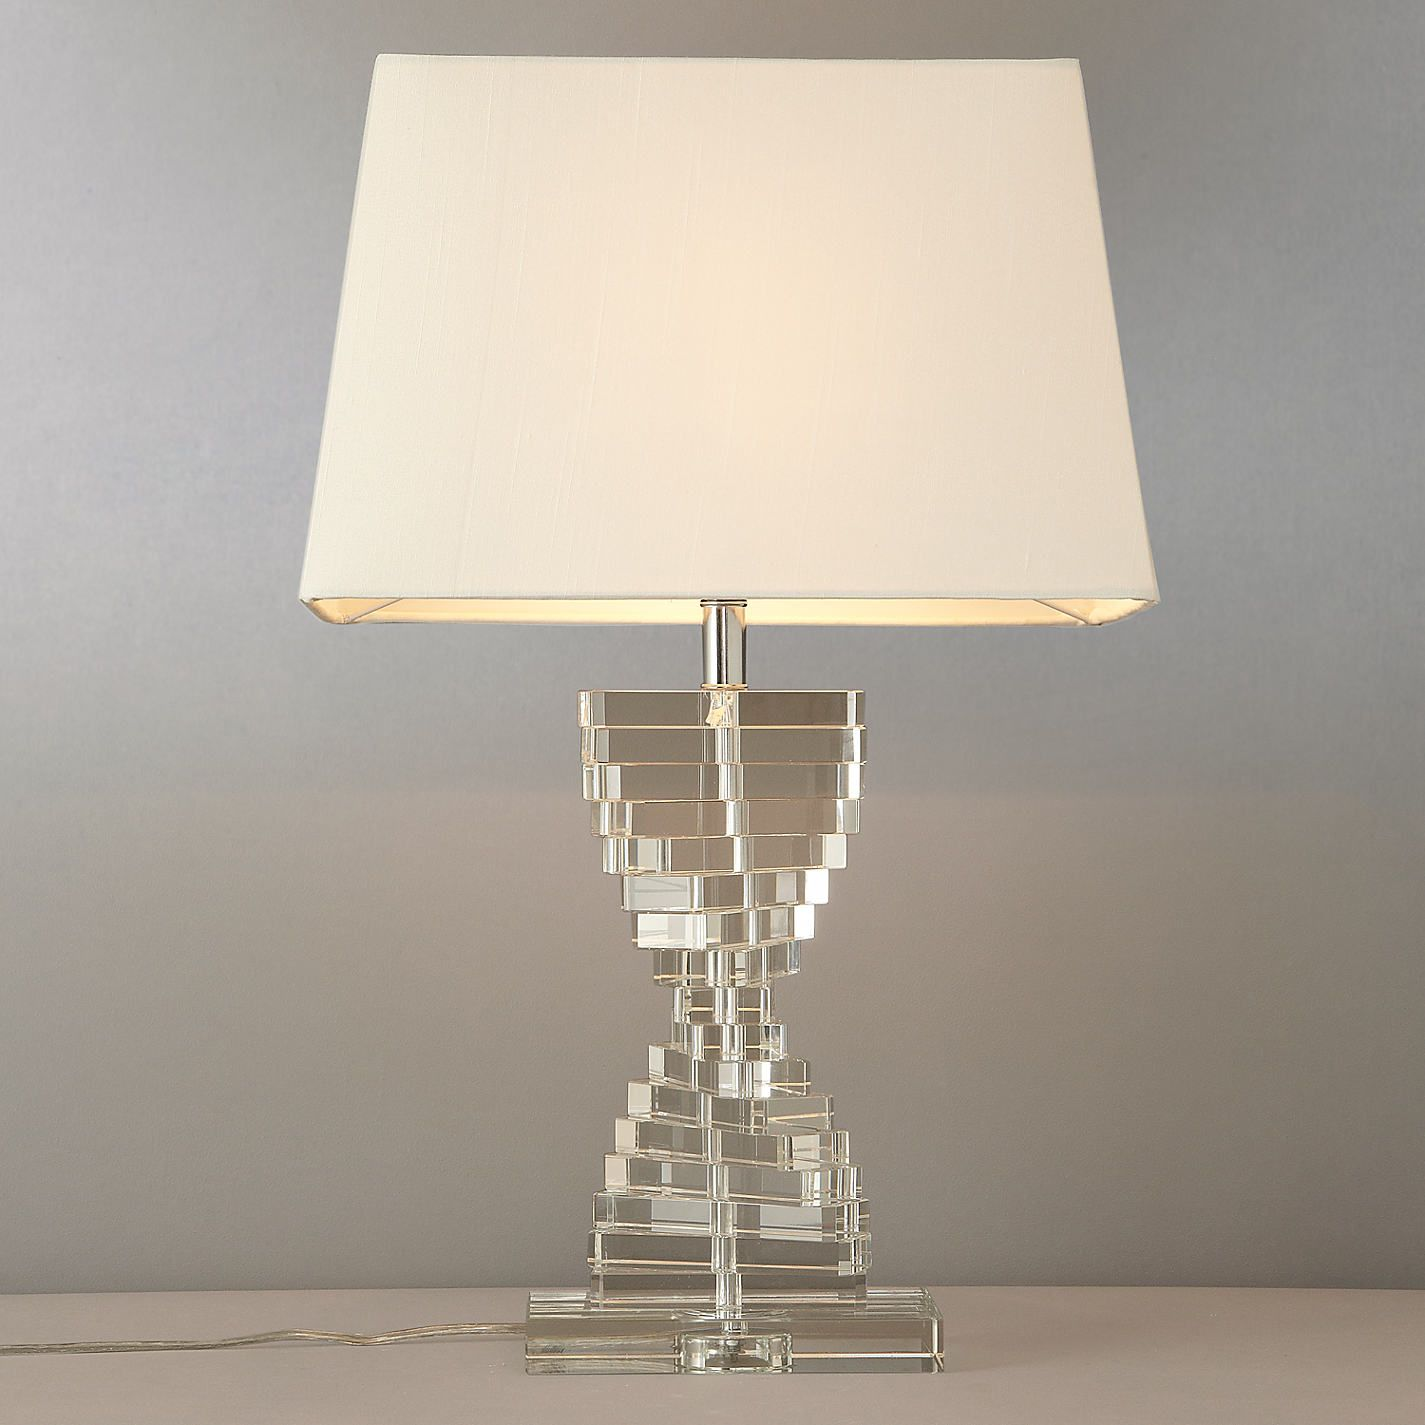 Diana glass steps table lamp john lewis diana and ranges buy john lewis diana glass steps table lamp from our view all table lamps range at mozeypictures Image collections